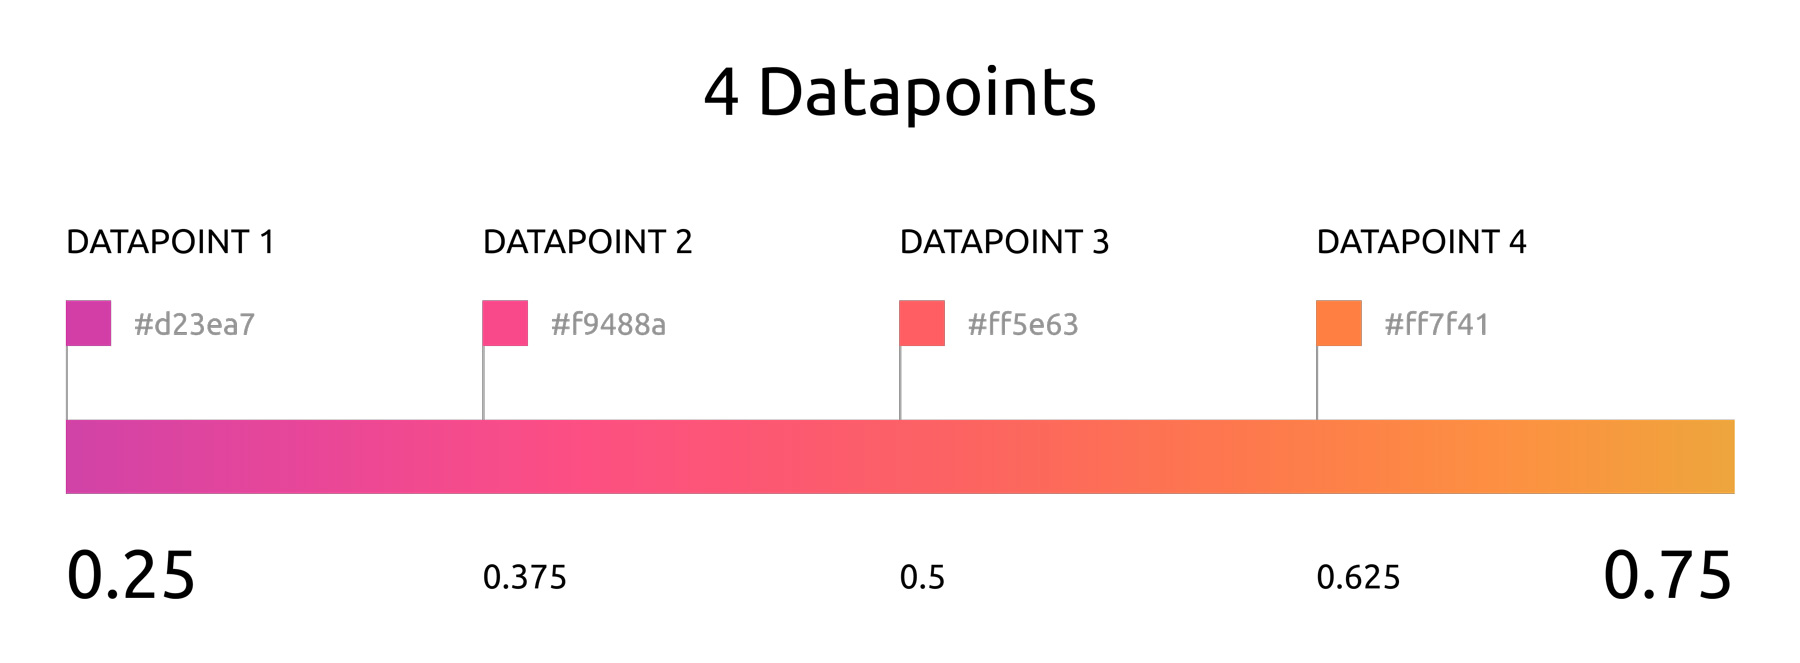 4 datapoints with color range [0.25, 0.75]